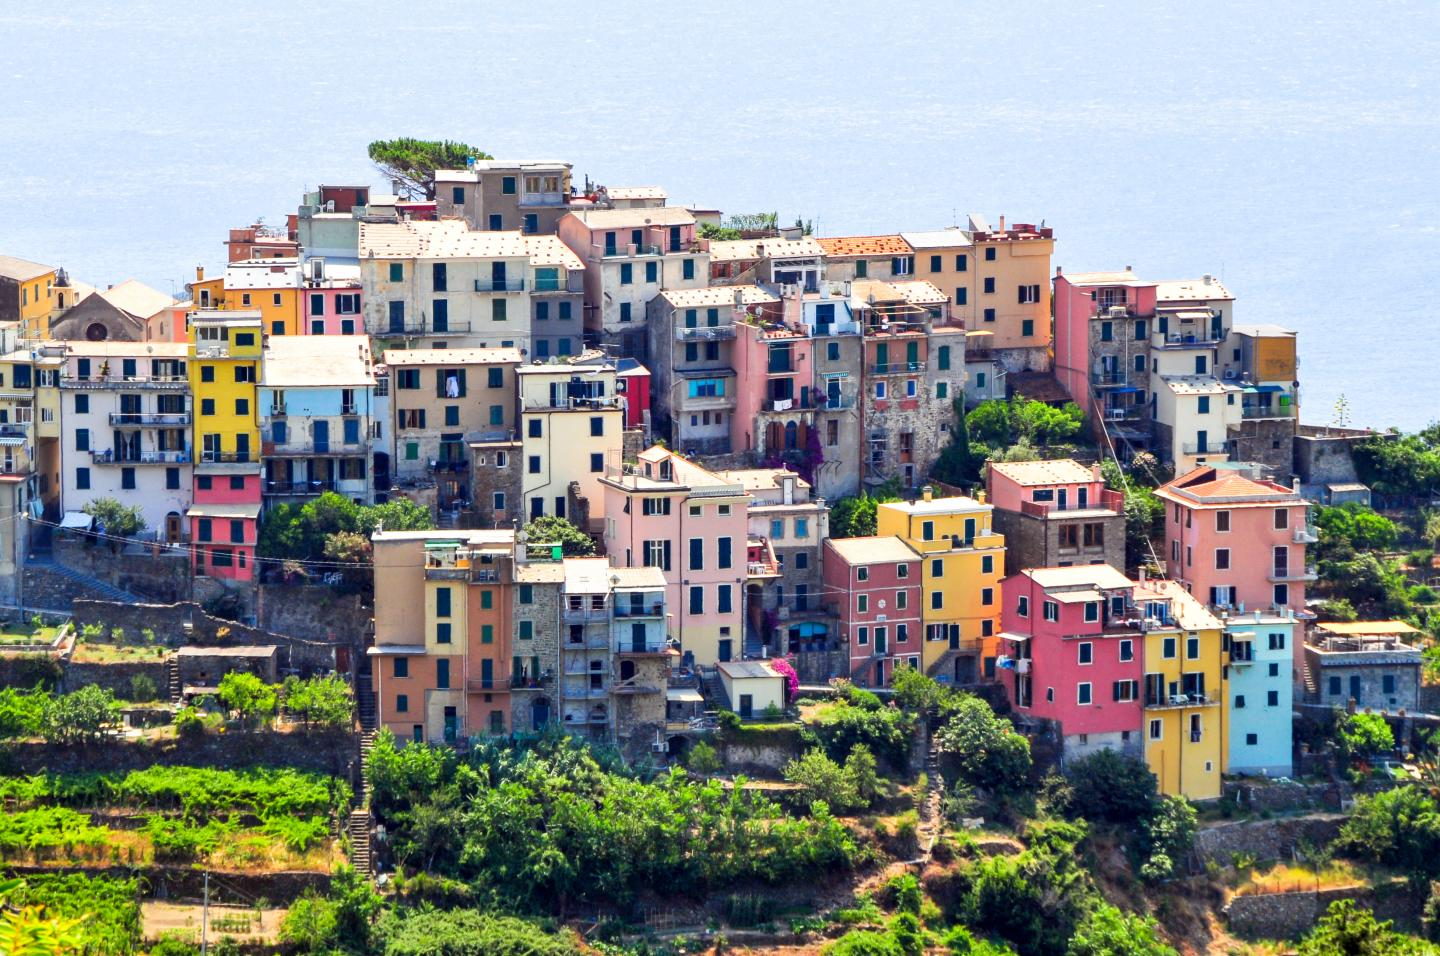 Fishing Village in Cinque Terre seen on summer teen travel photography program